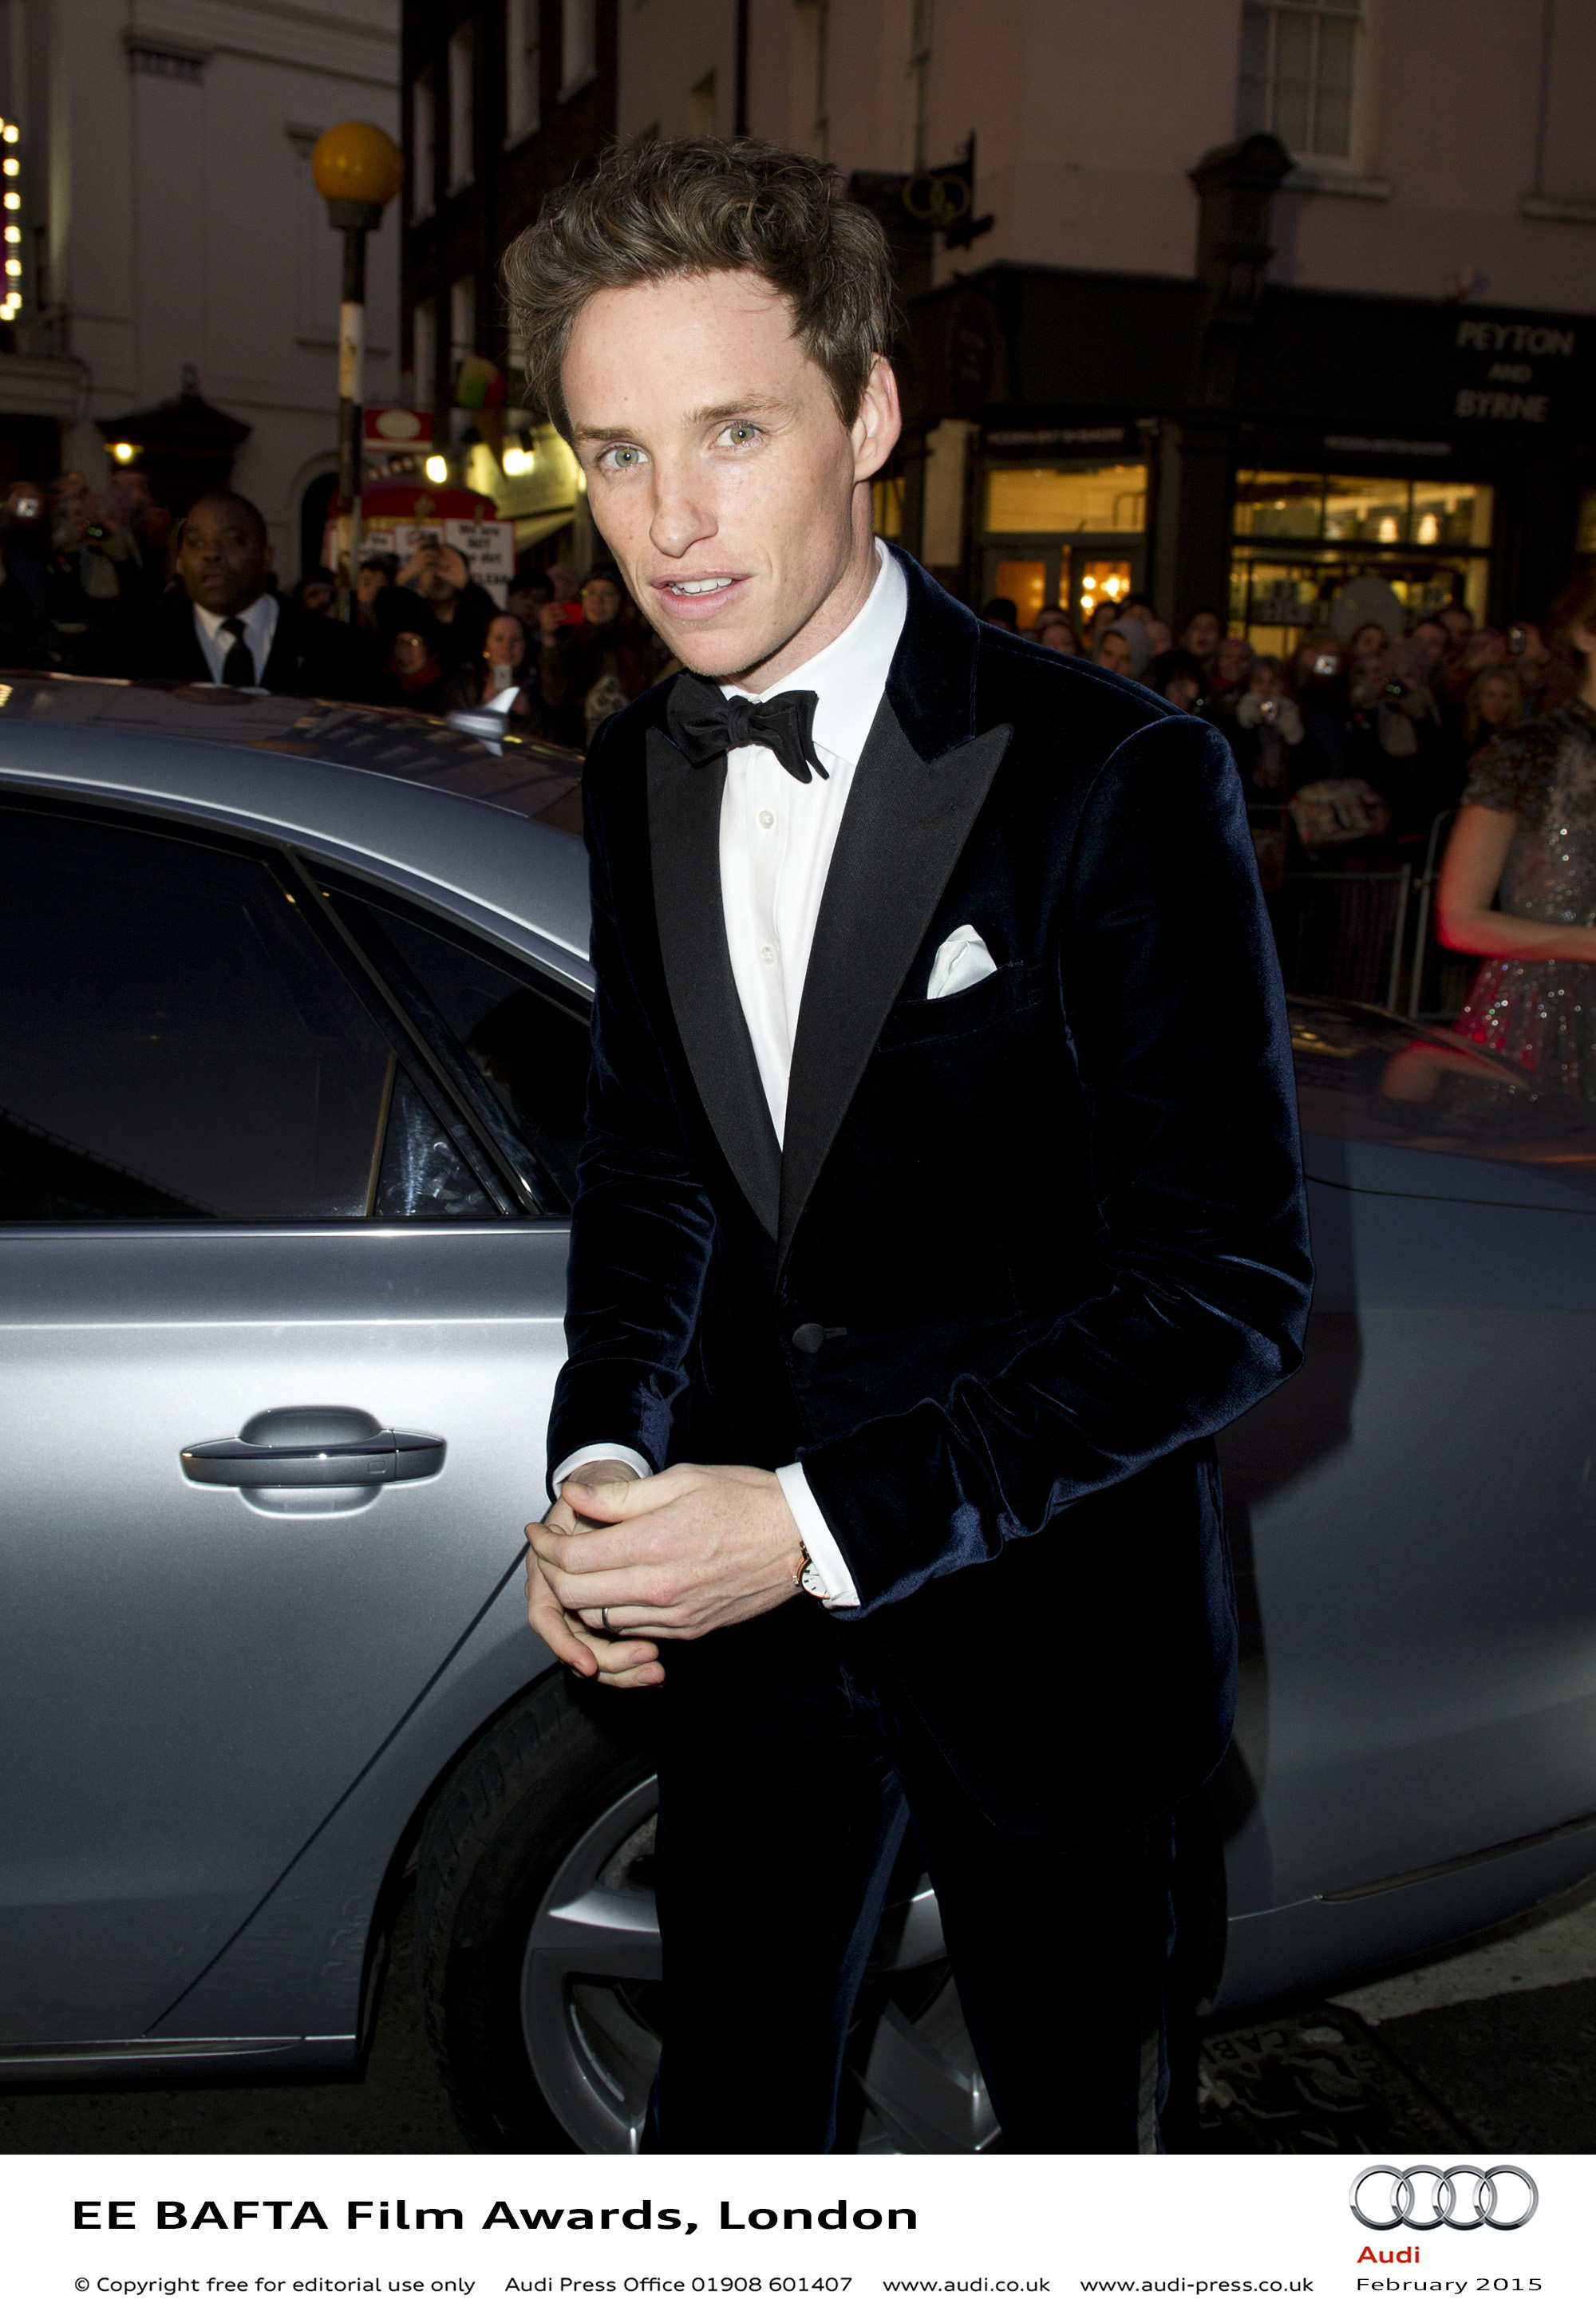 Eddie Redmayne - EE BAFTA Film Awards